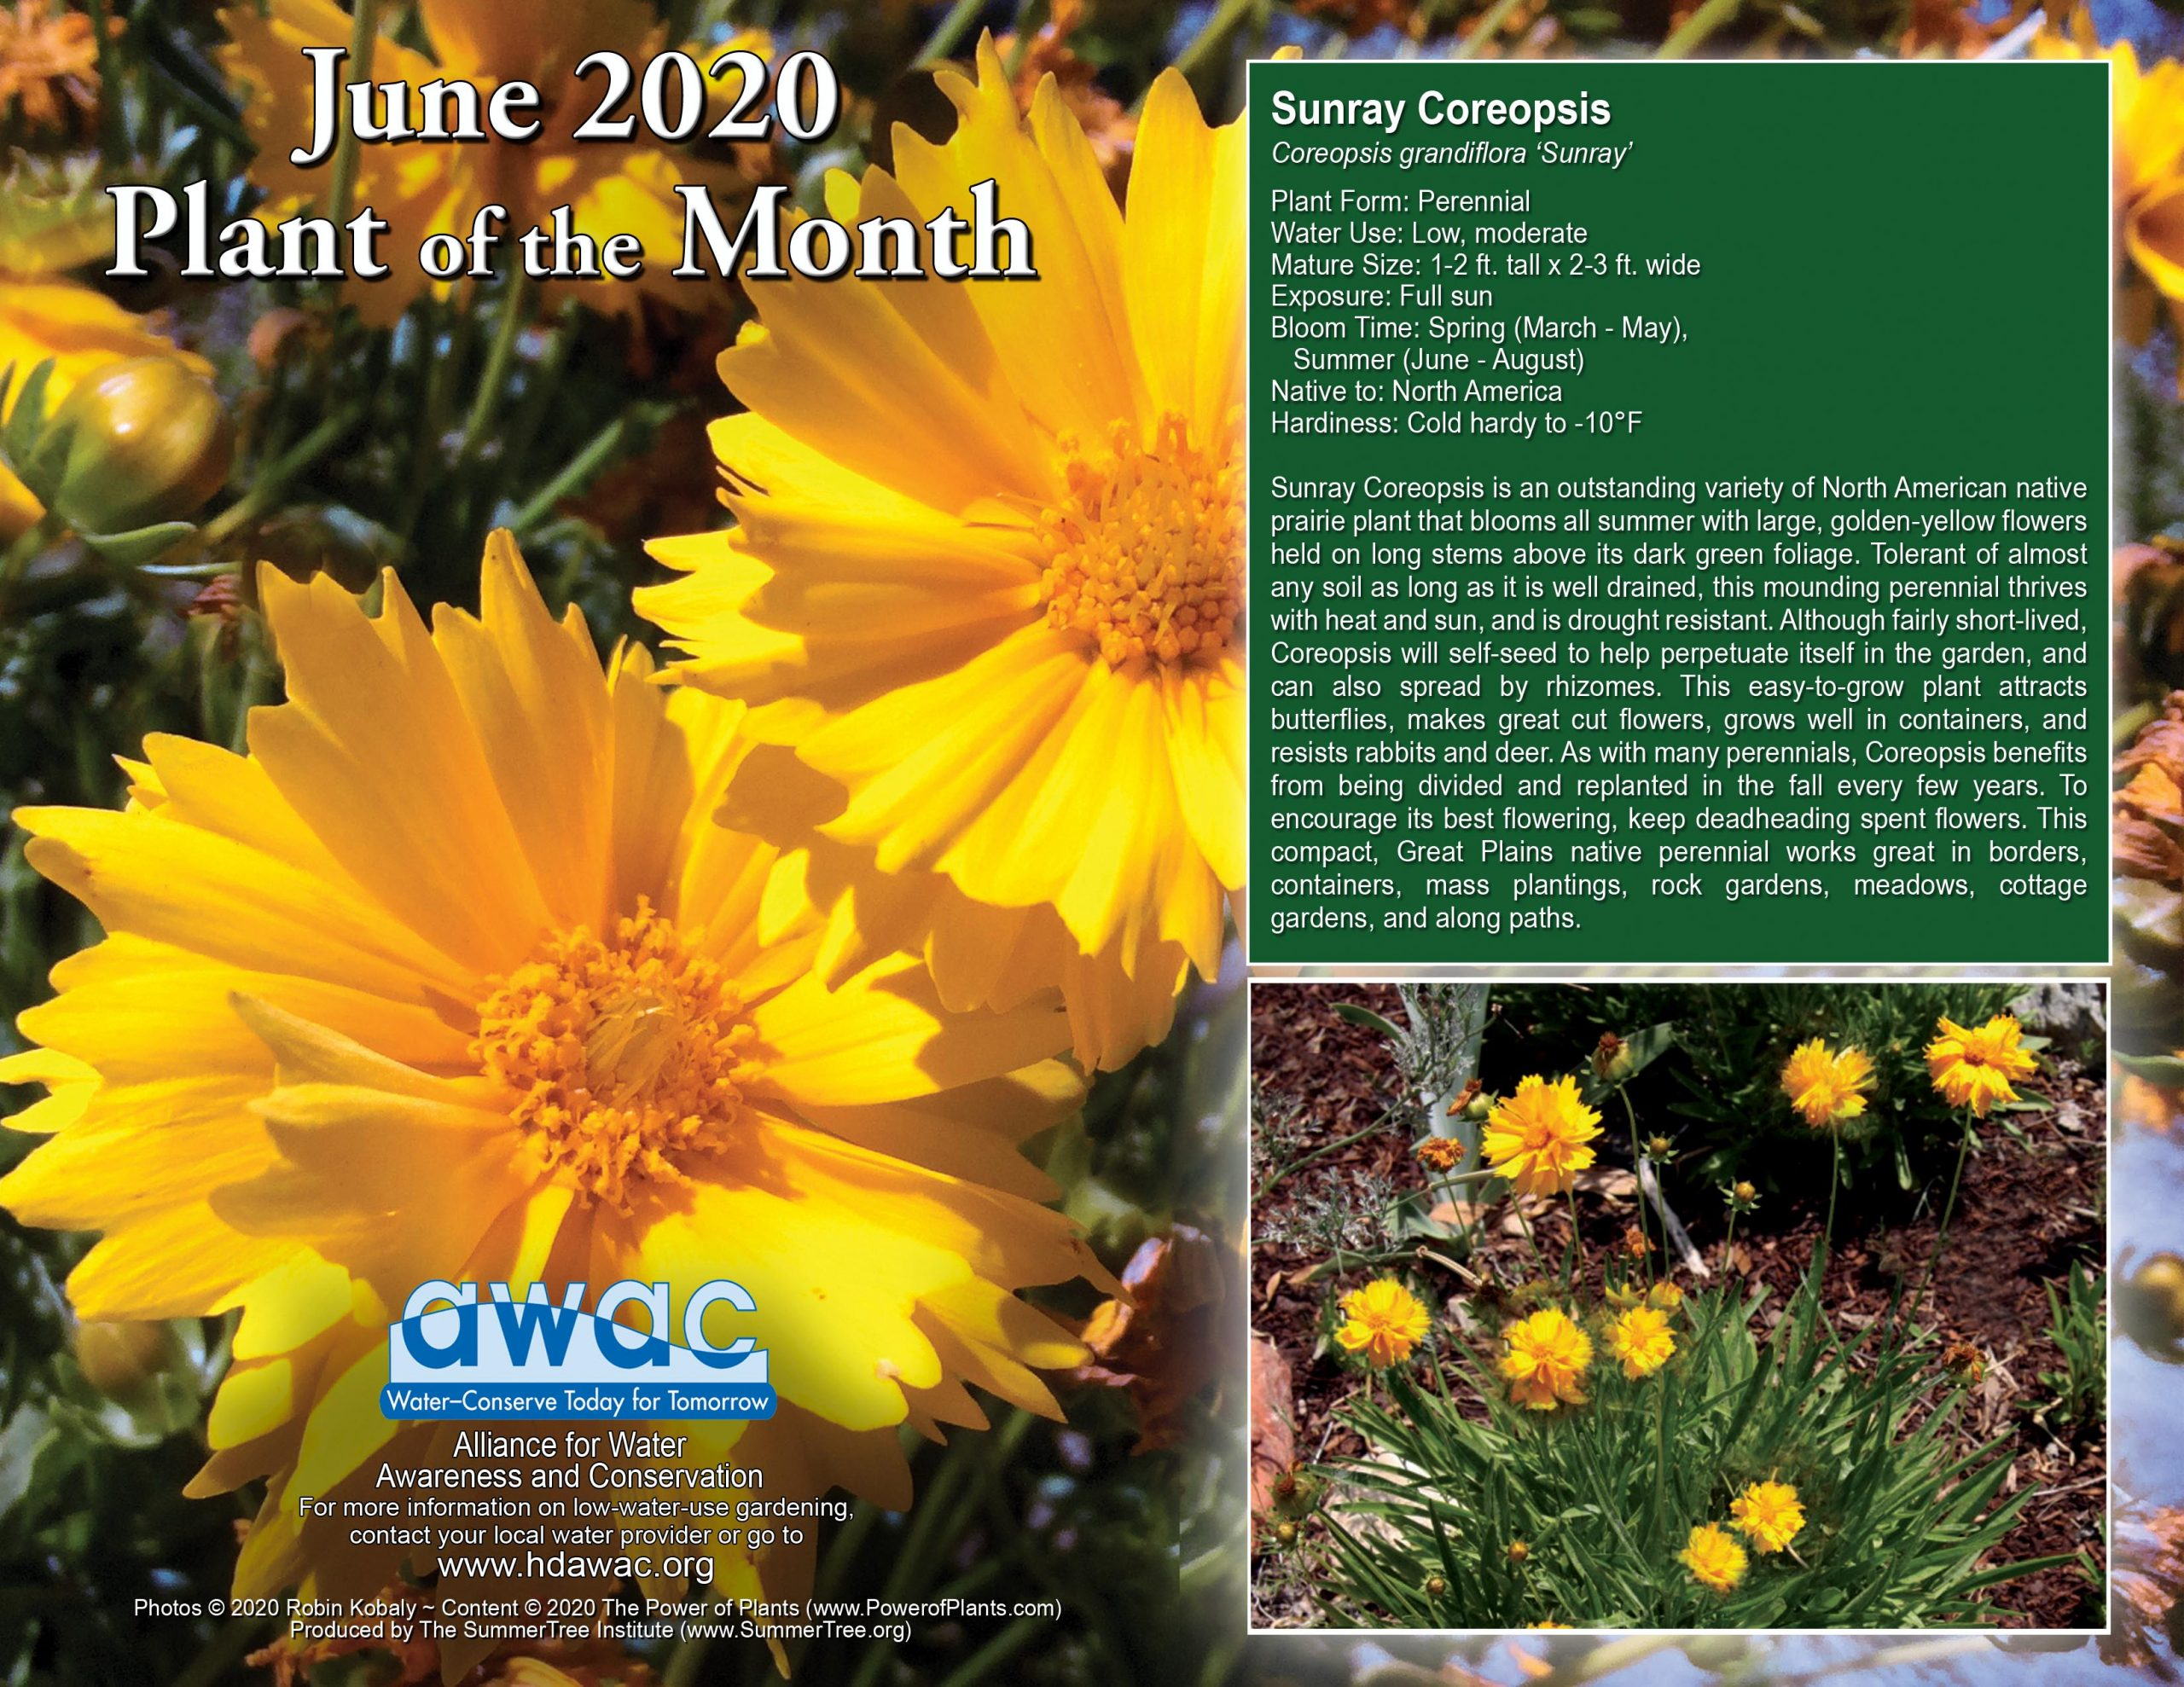 AWAC June 2020 Flower of the Month